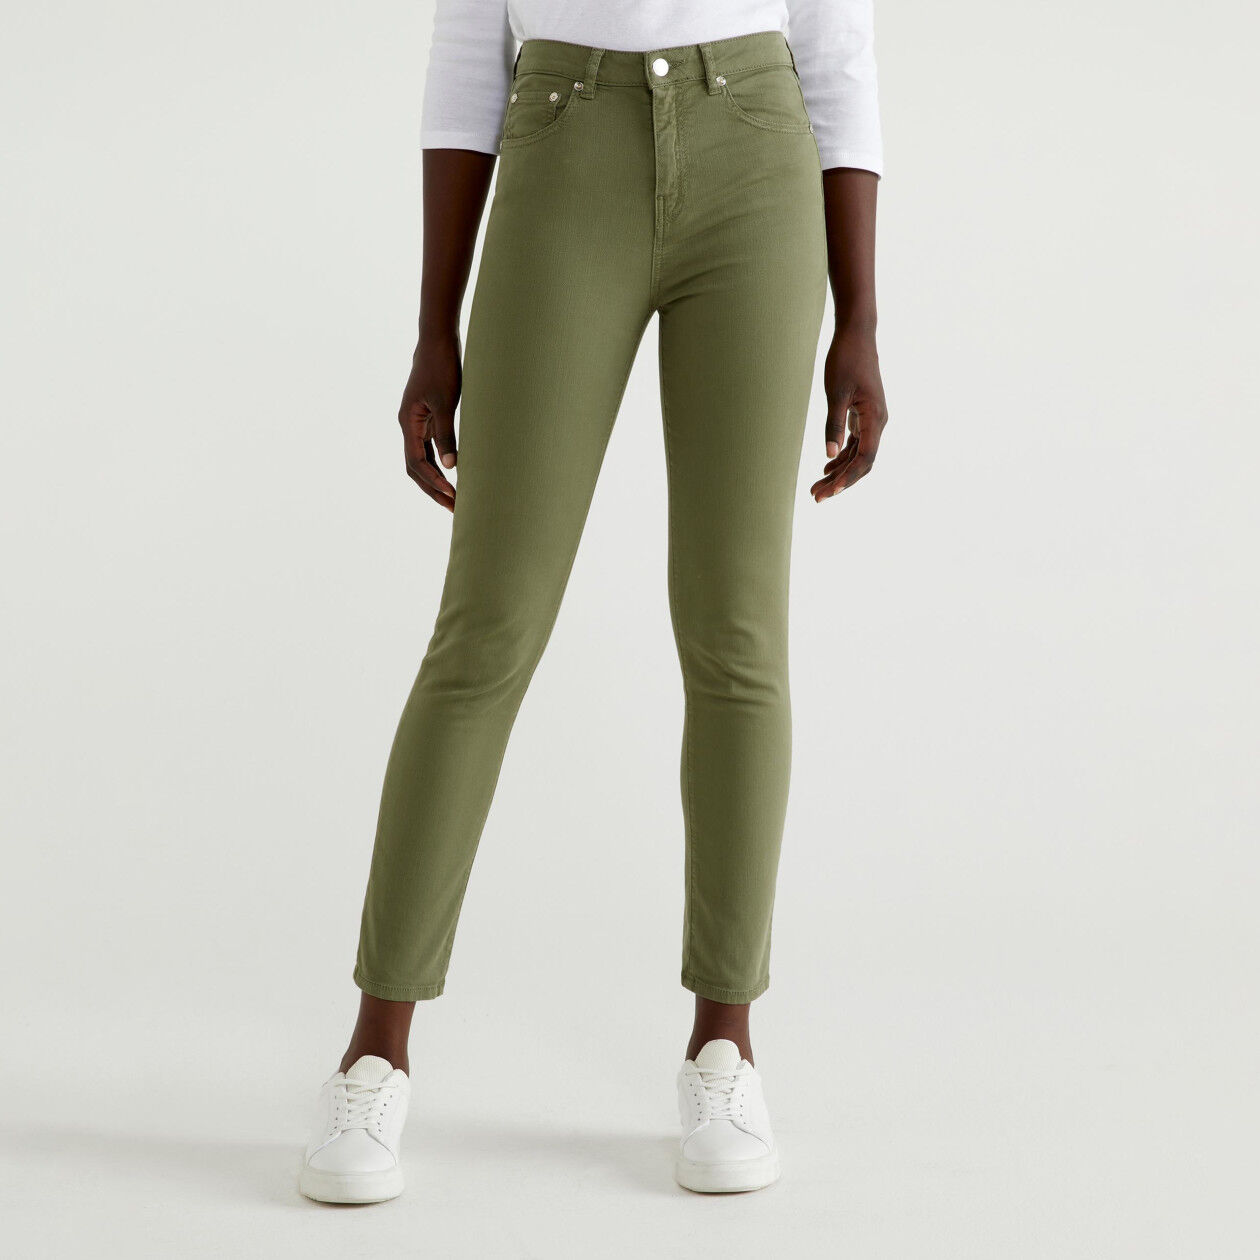 Pantalon coupe skinny